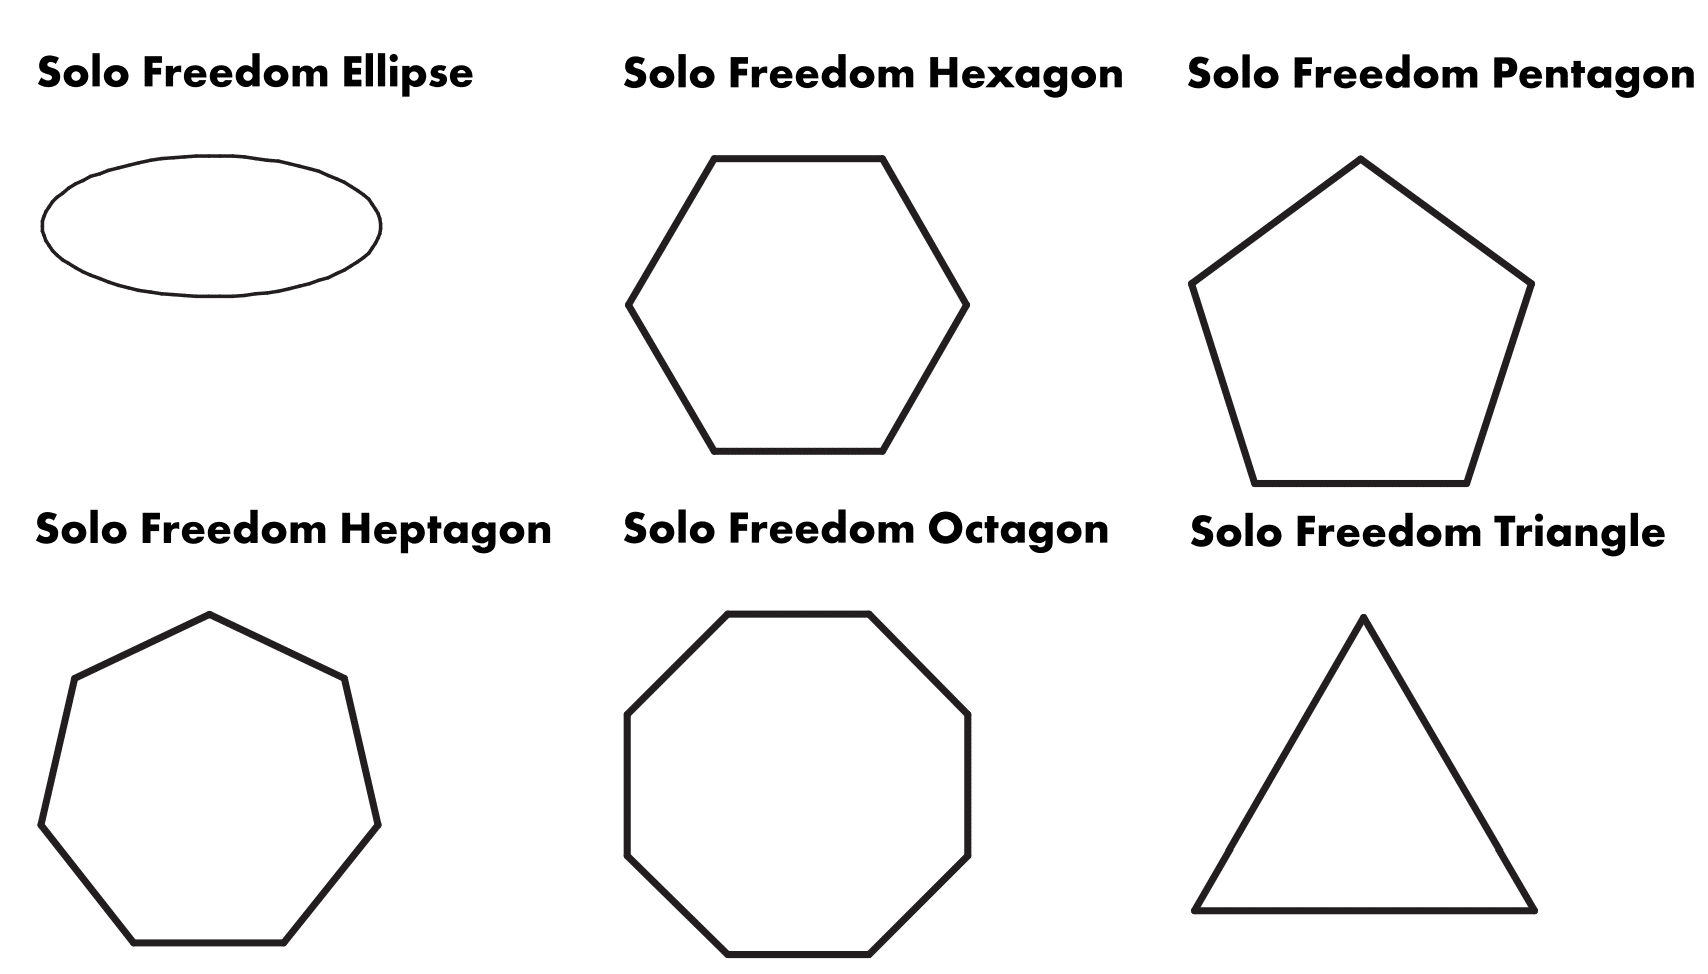 Ecophon Solo Freedom forms